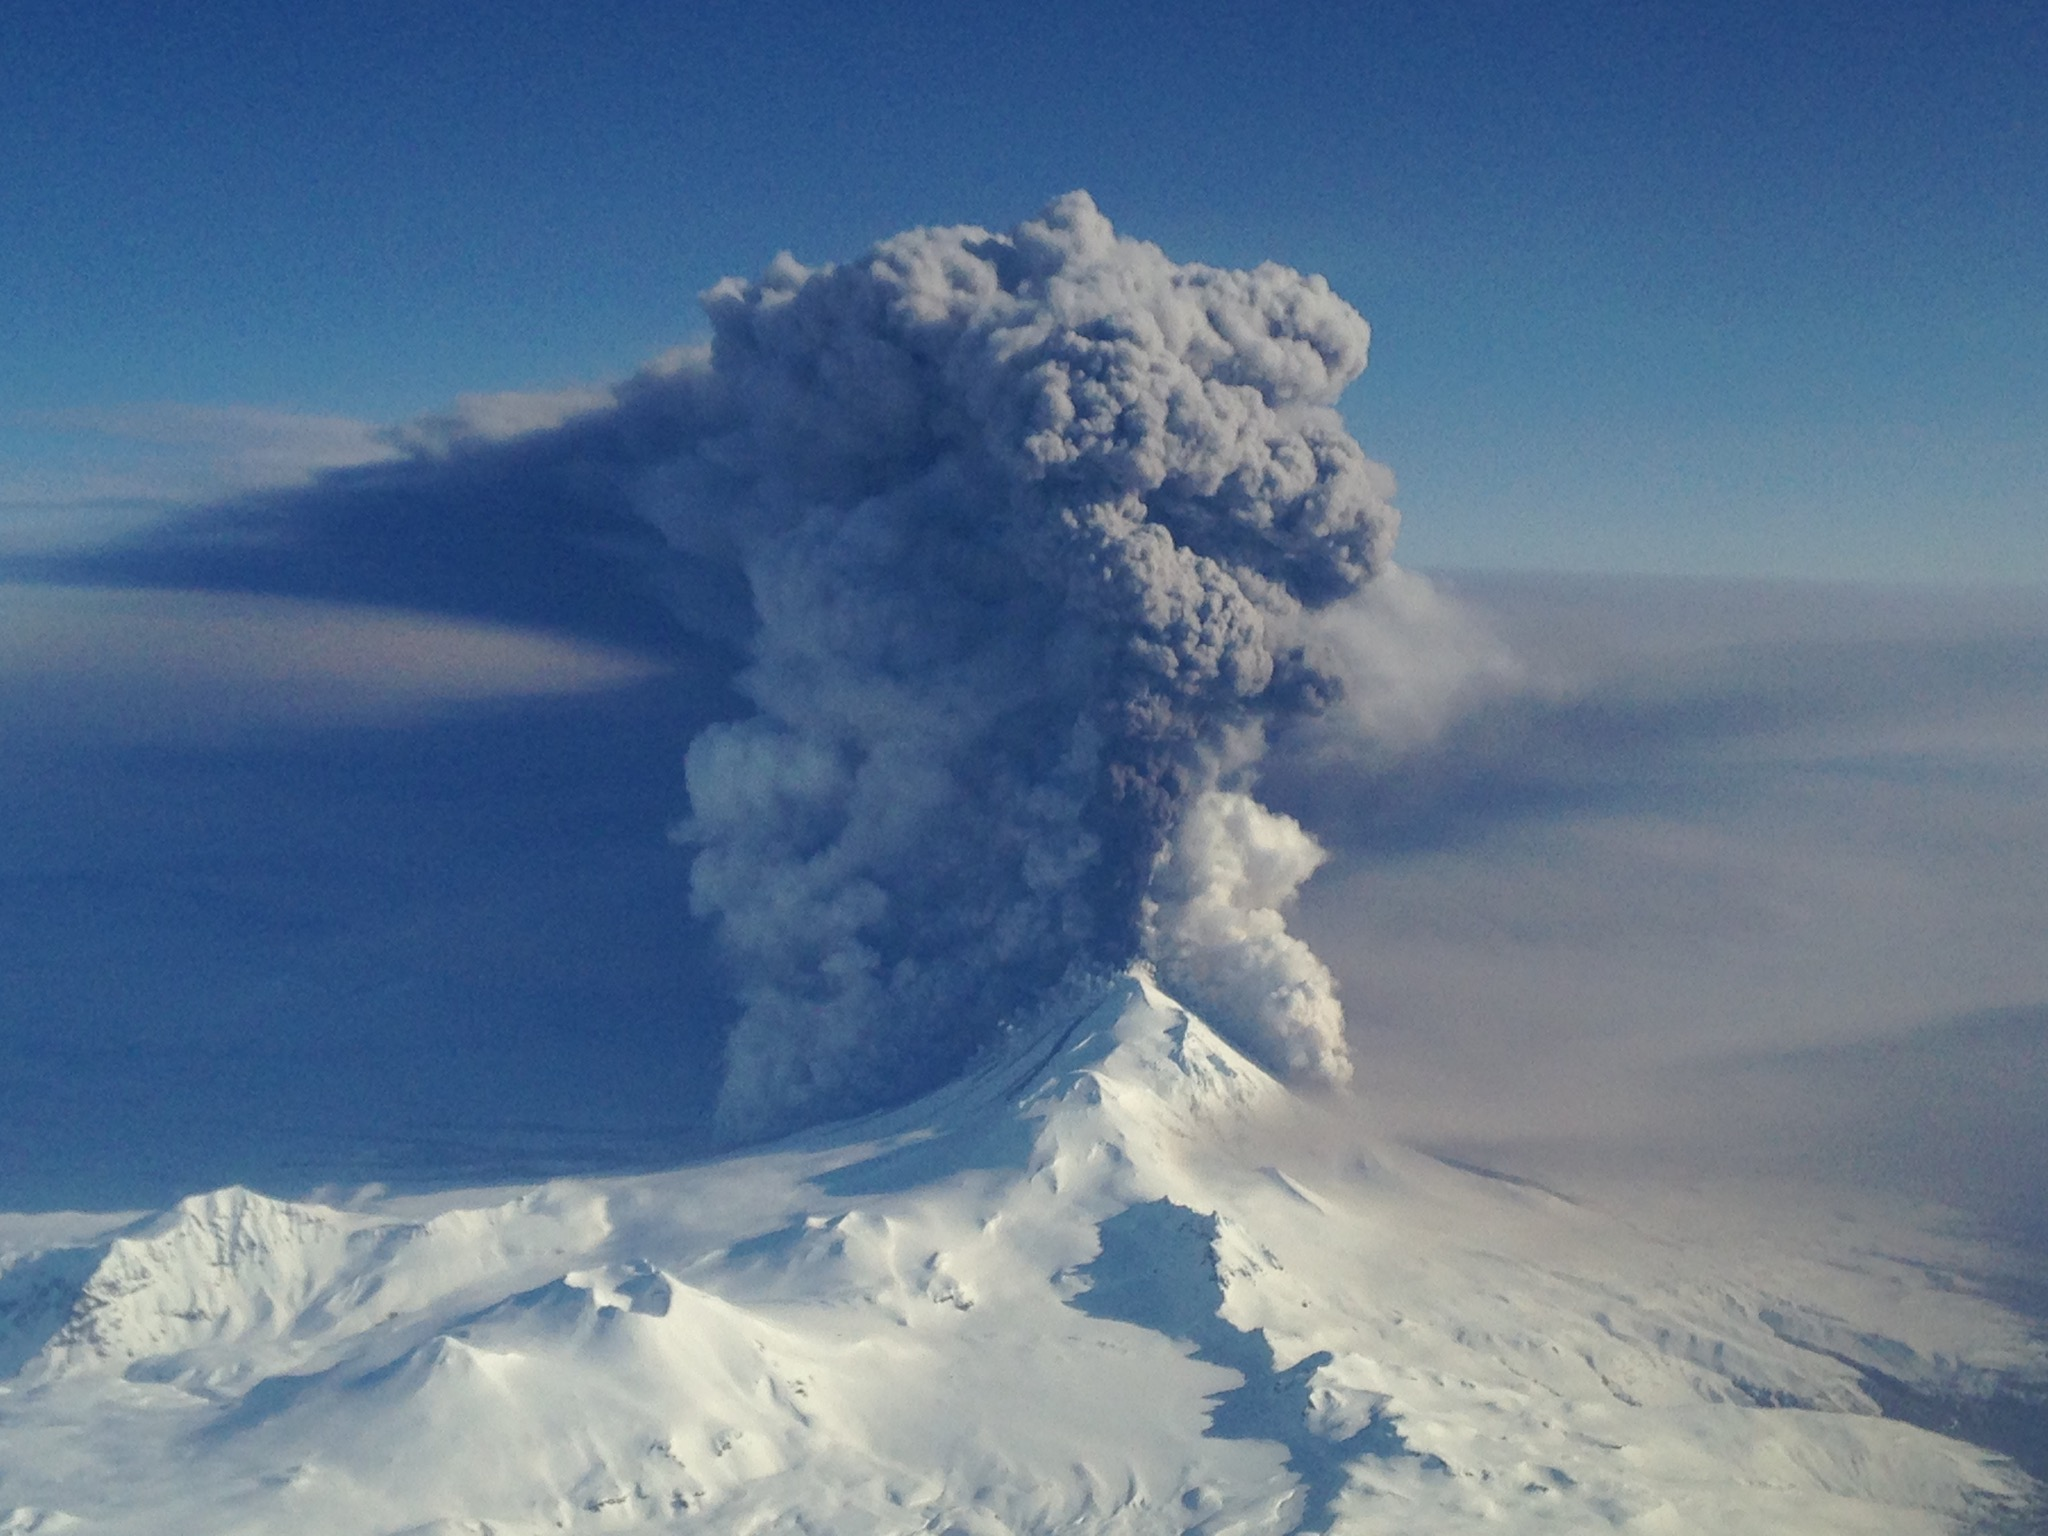 Alaska's Pavlof Volcano erupting on March 16, 2016. (Image credit: Nahshon Almandmoss/U.S. Coast Guard)